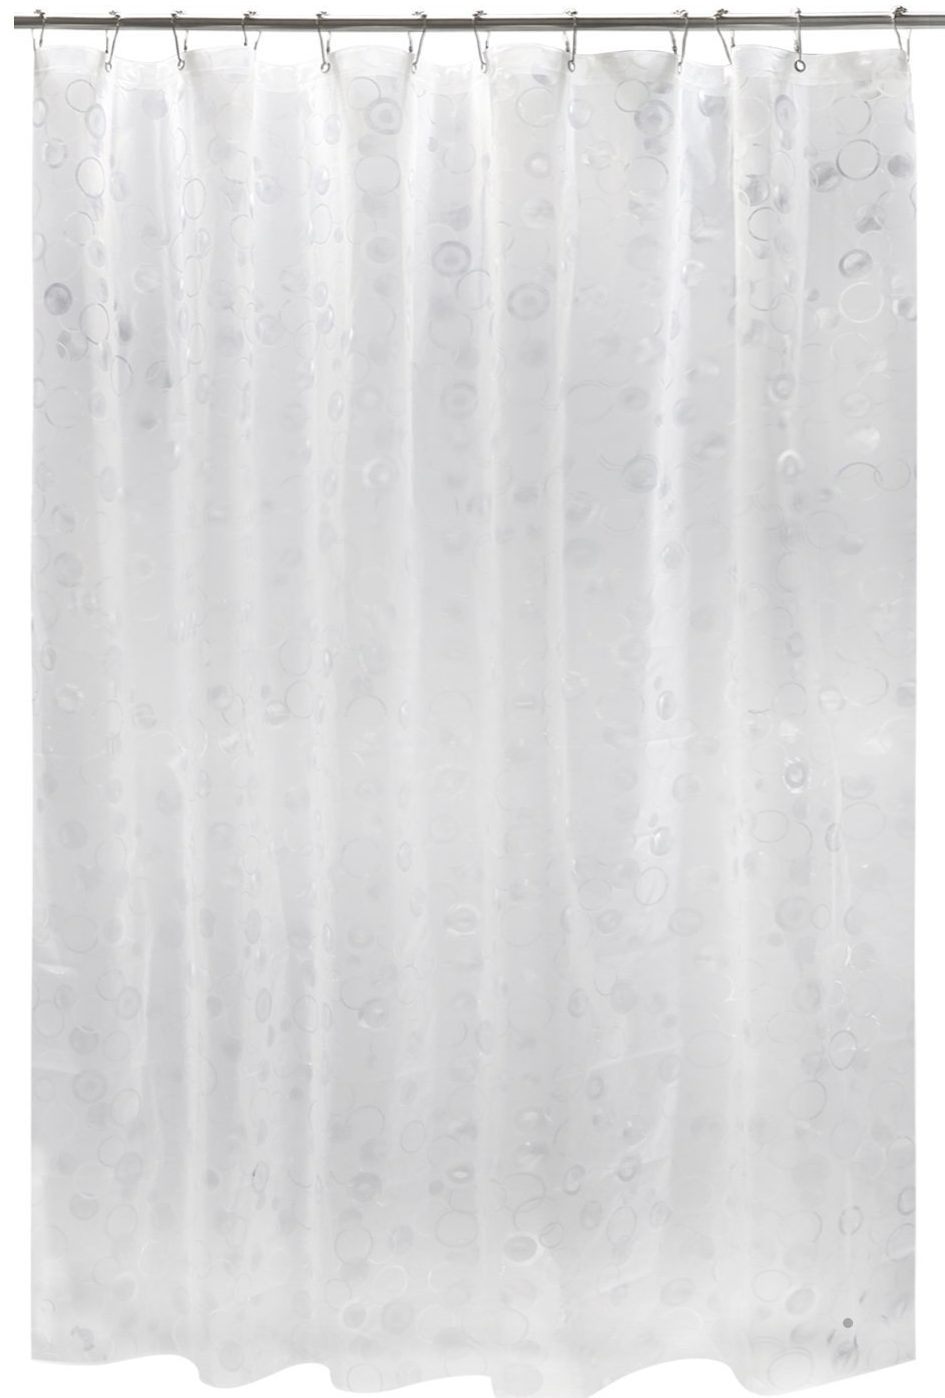 Environmentally Friendly Shower Curtain What Do You Need For A Healthy Shower